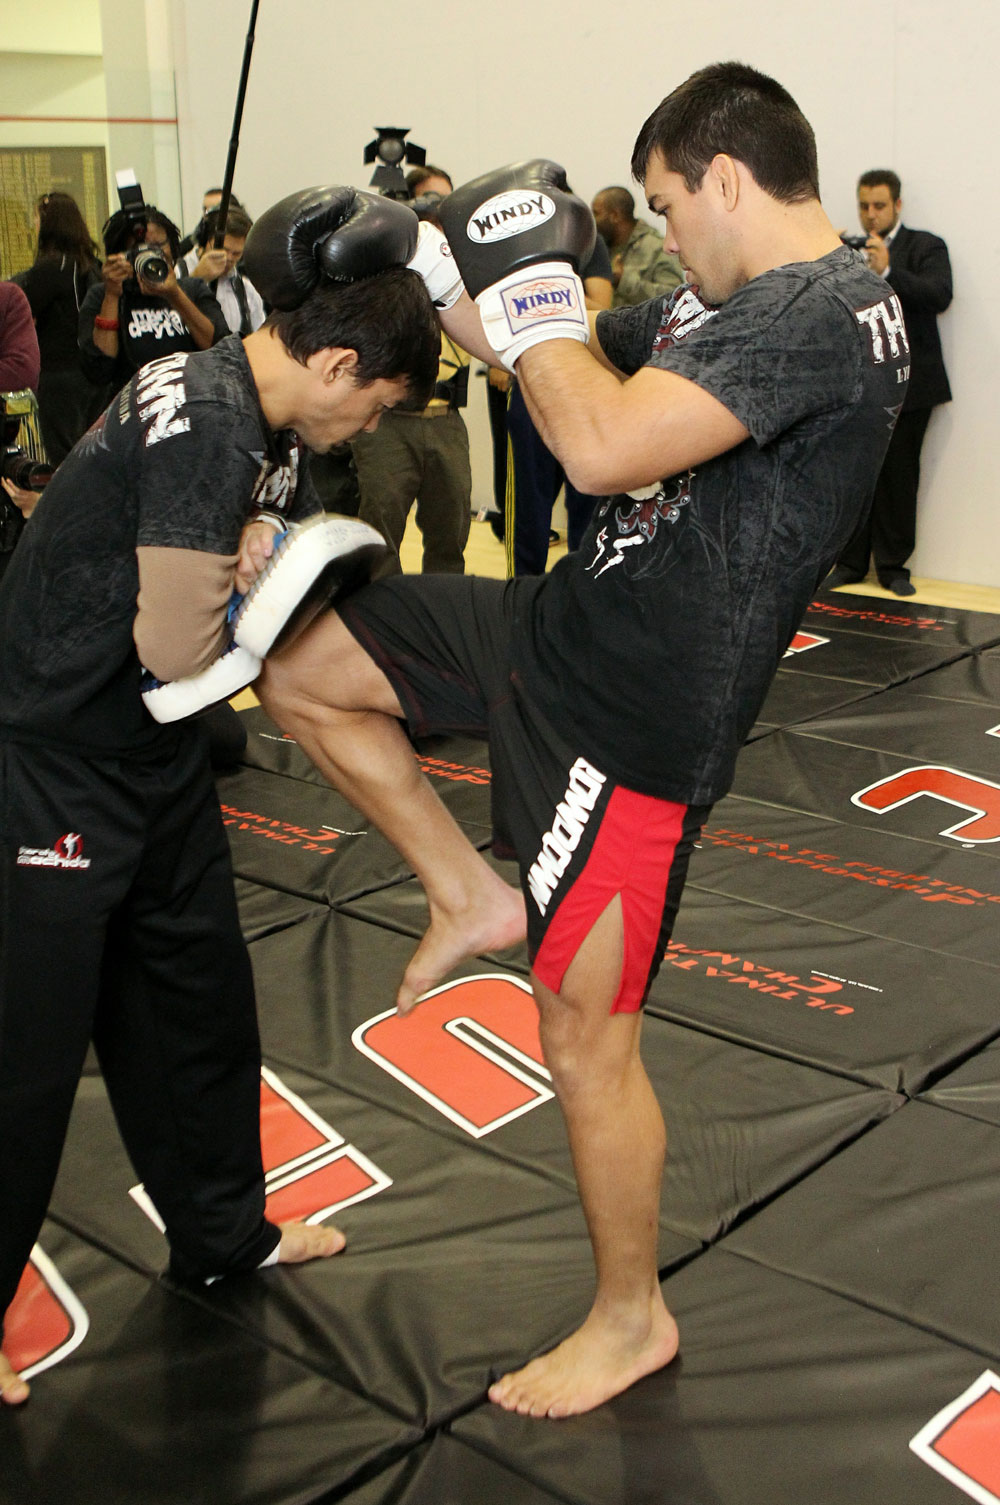 Lyoto Machida (R) works out for the media at the UFC 123 open workouts at the Detroit Athletic Club in Detroit, Michigan on November 18, 2010  (Photo by Josh Hedges/Zuffa LLC/Zuffa LLC via Getty Images)